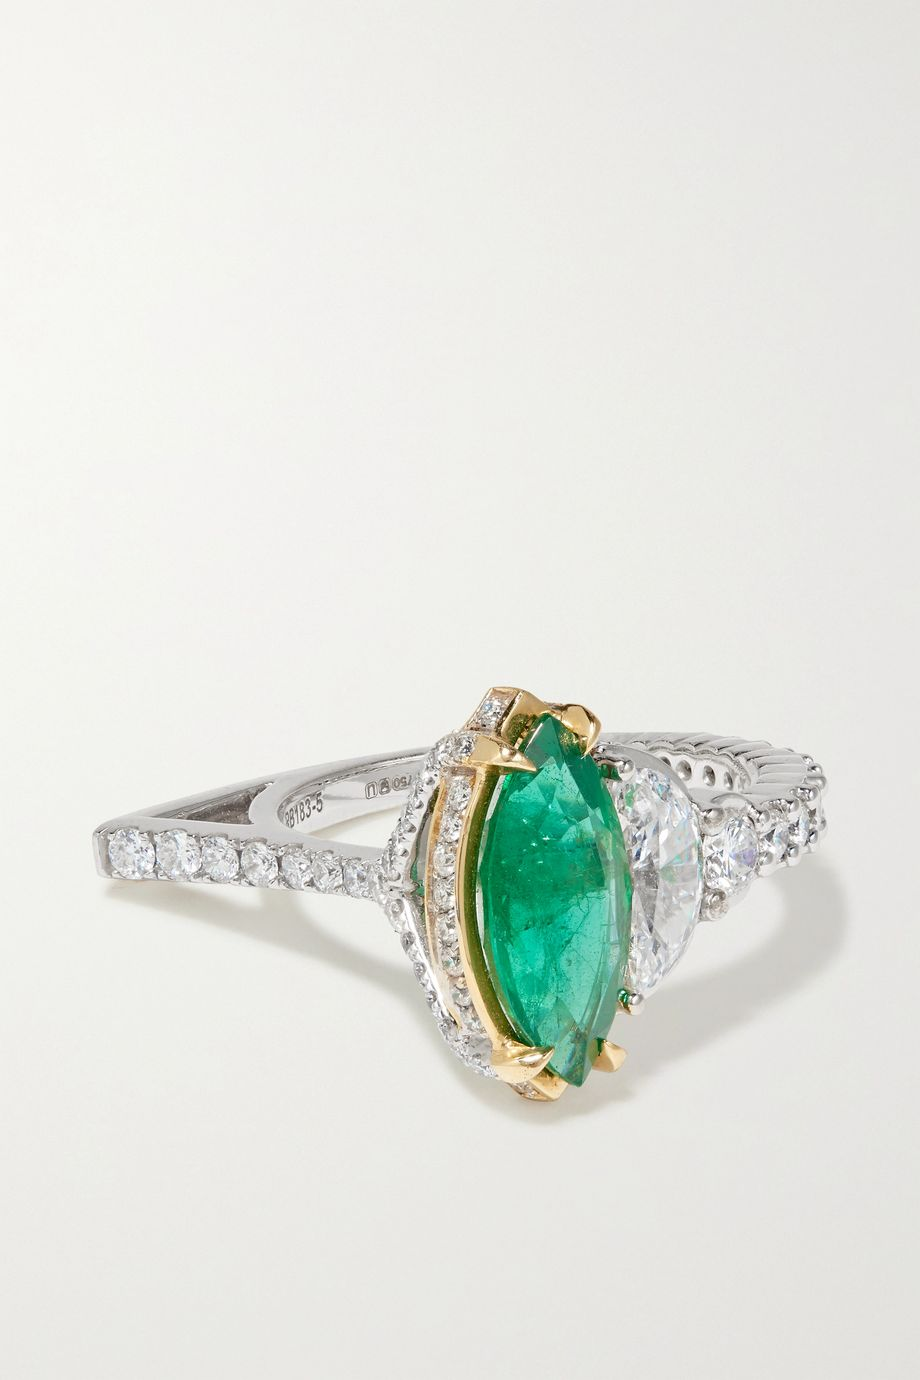 Ara Vartanian 18-karat white and yellow gold, emerald and diamond ring